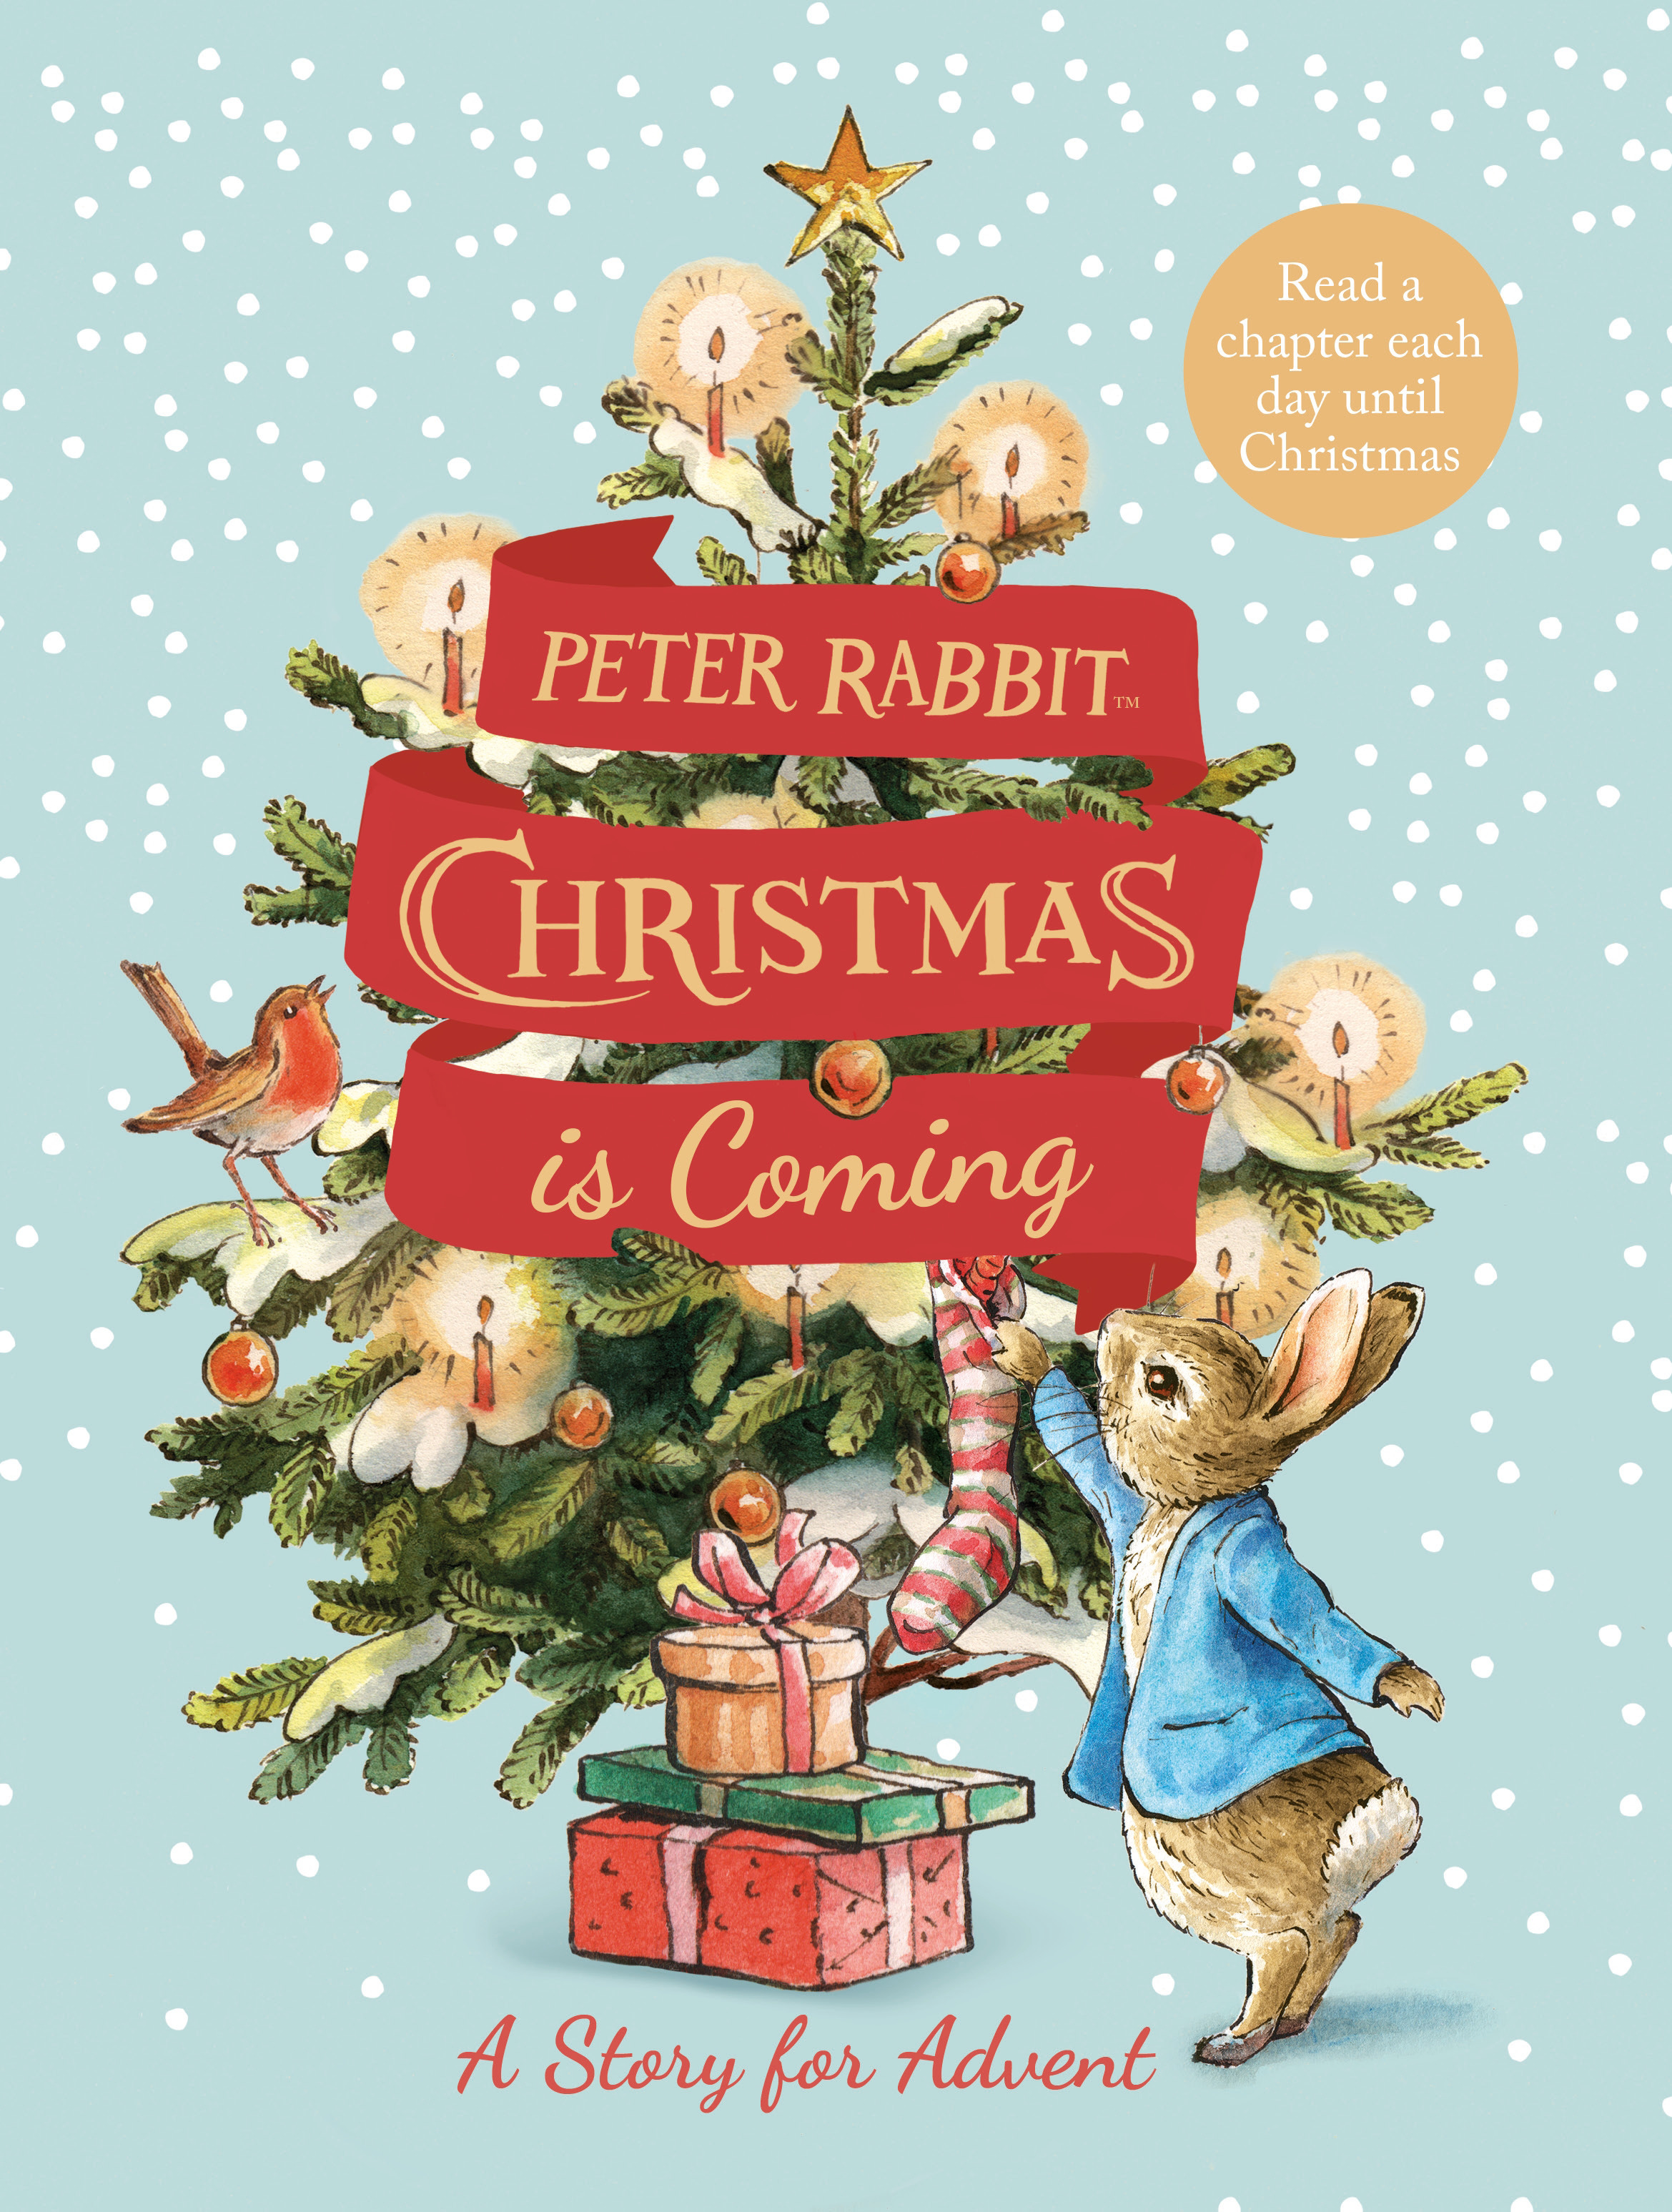 Peter Rabbit: Christmas is Coming : A Christmas Countdown Book | Picture books